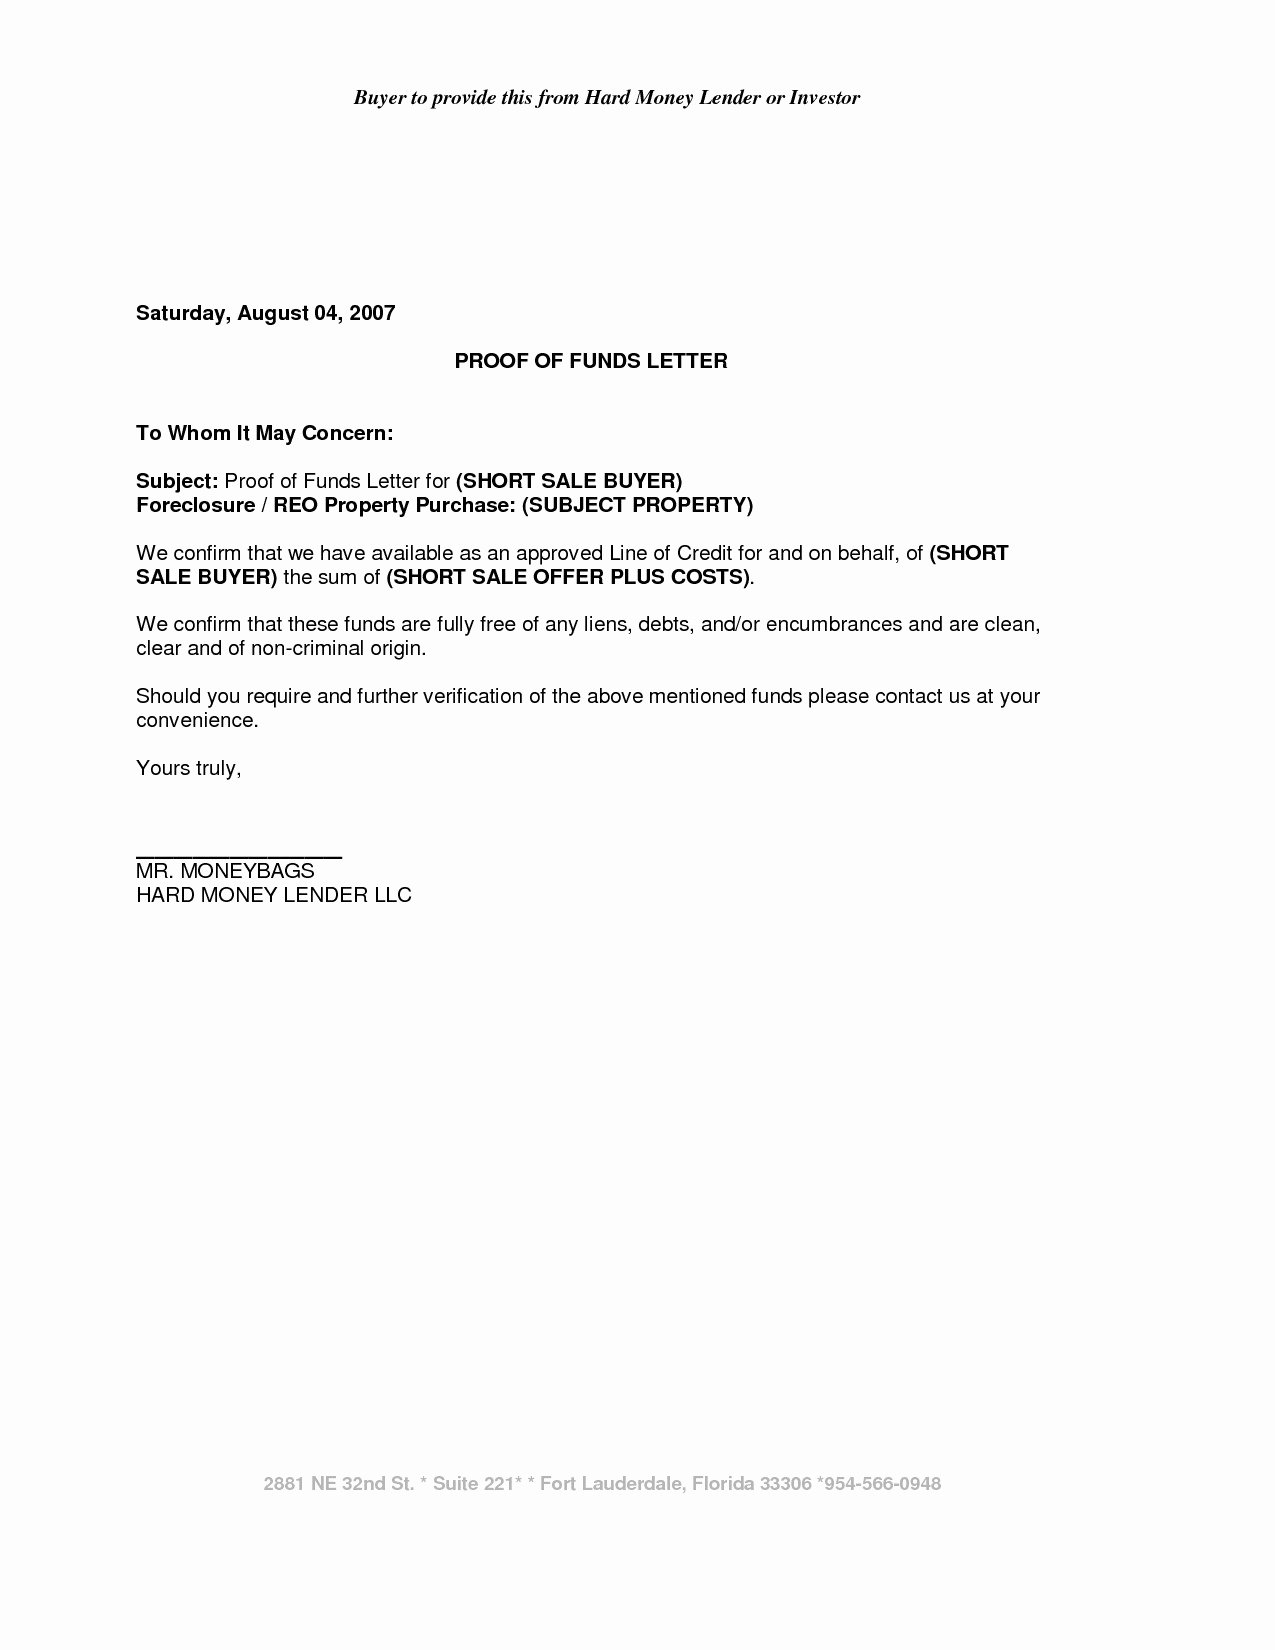 Verification Of Funds Letter Template Awesome School Secretary Cover Letter Template Examples